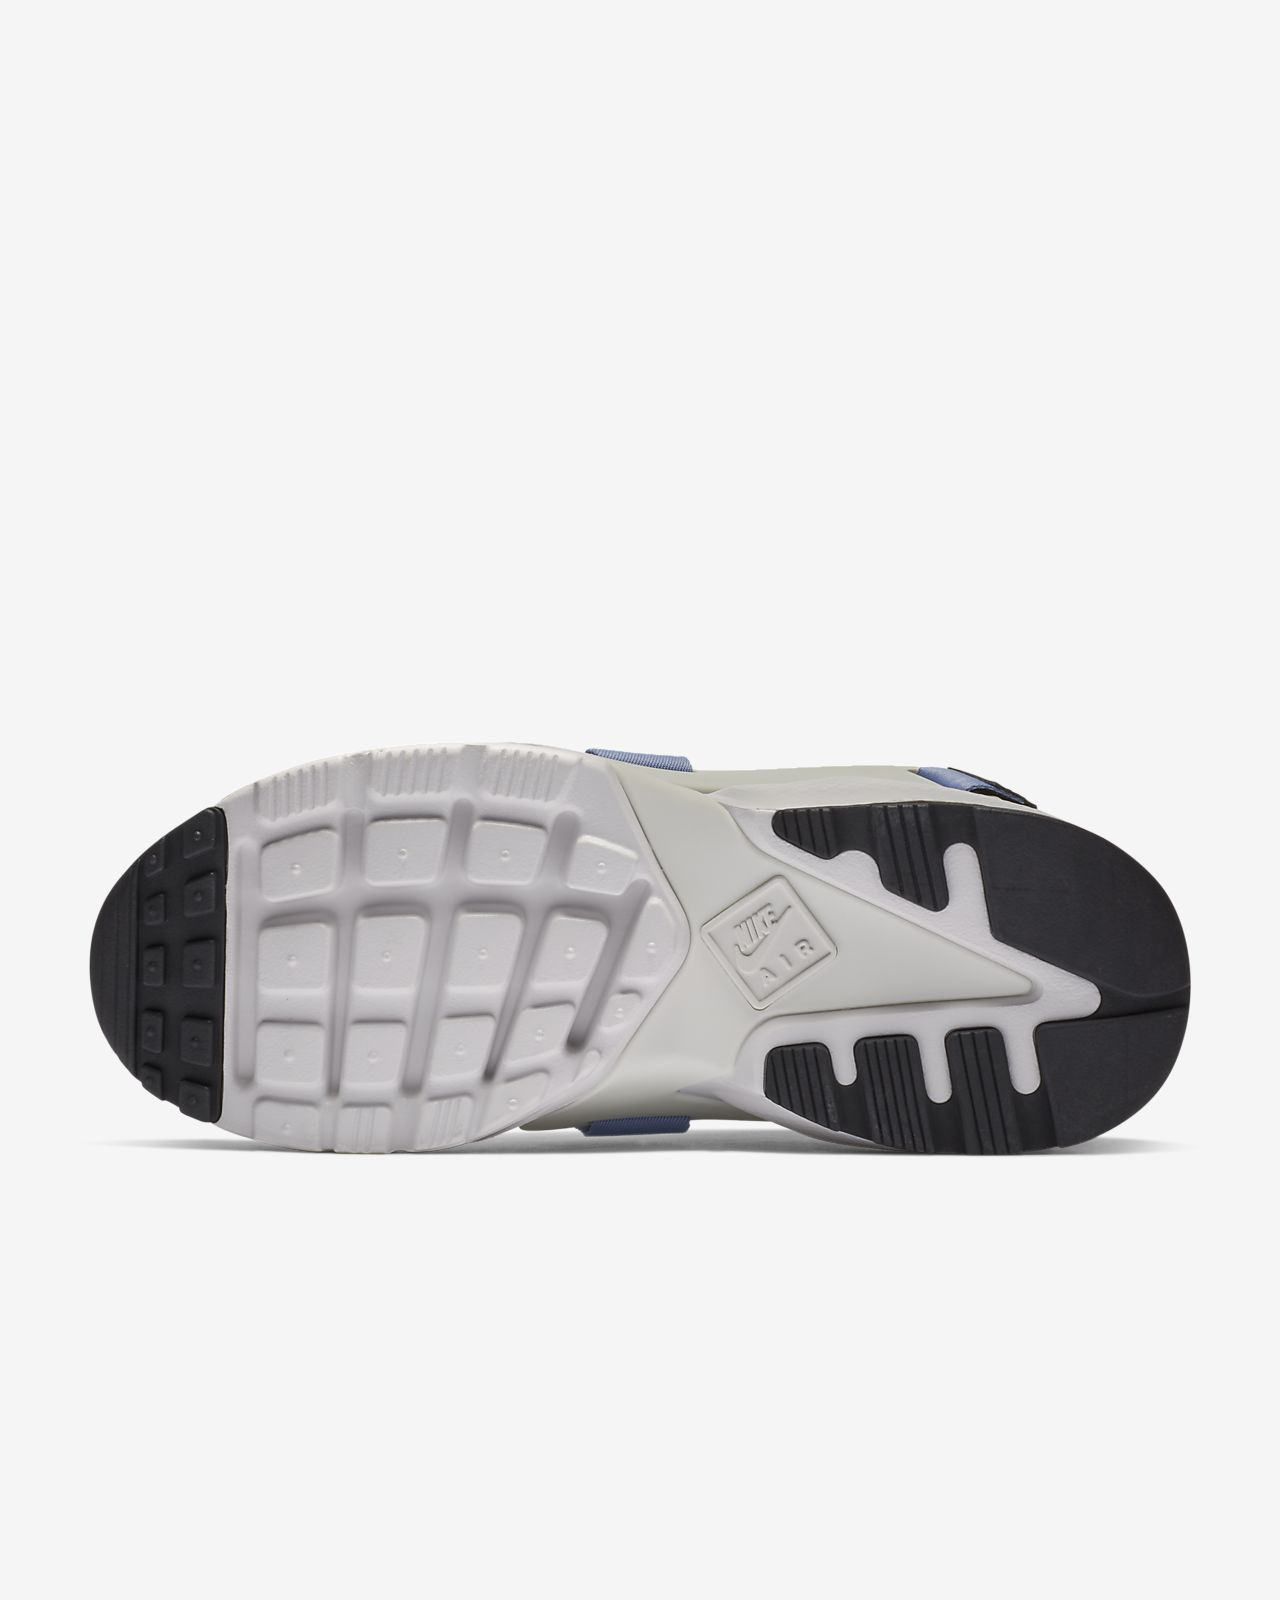 91f2e1f45794f Nike Air Huarache City Low Women s Shoe. Nike.com